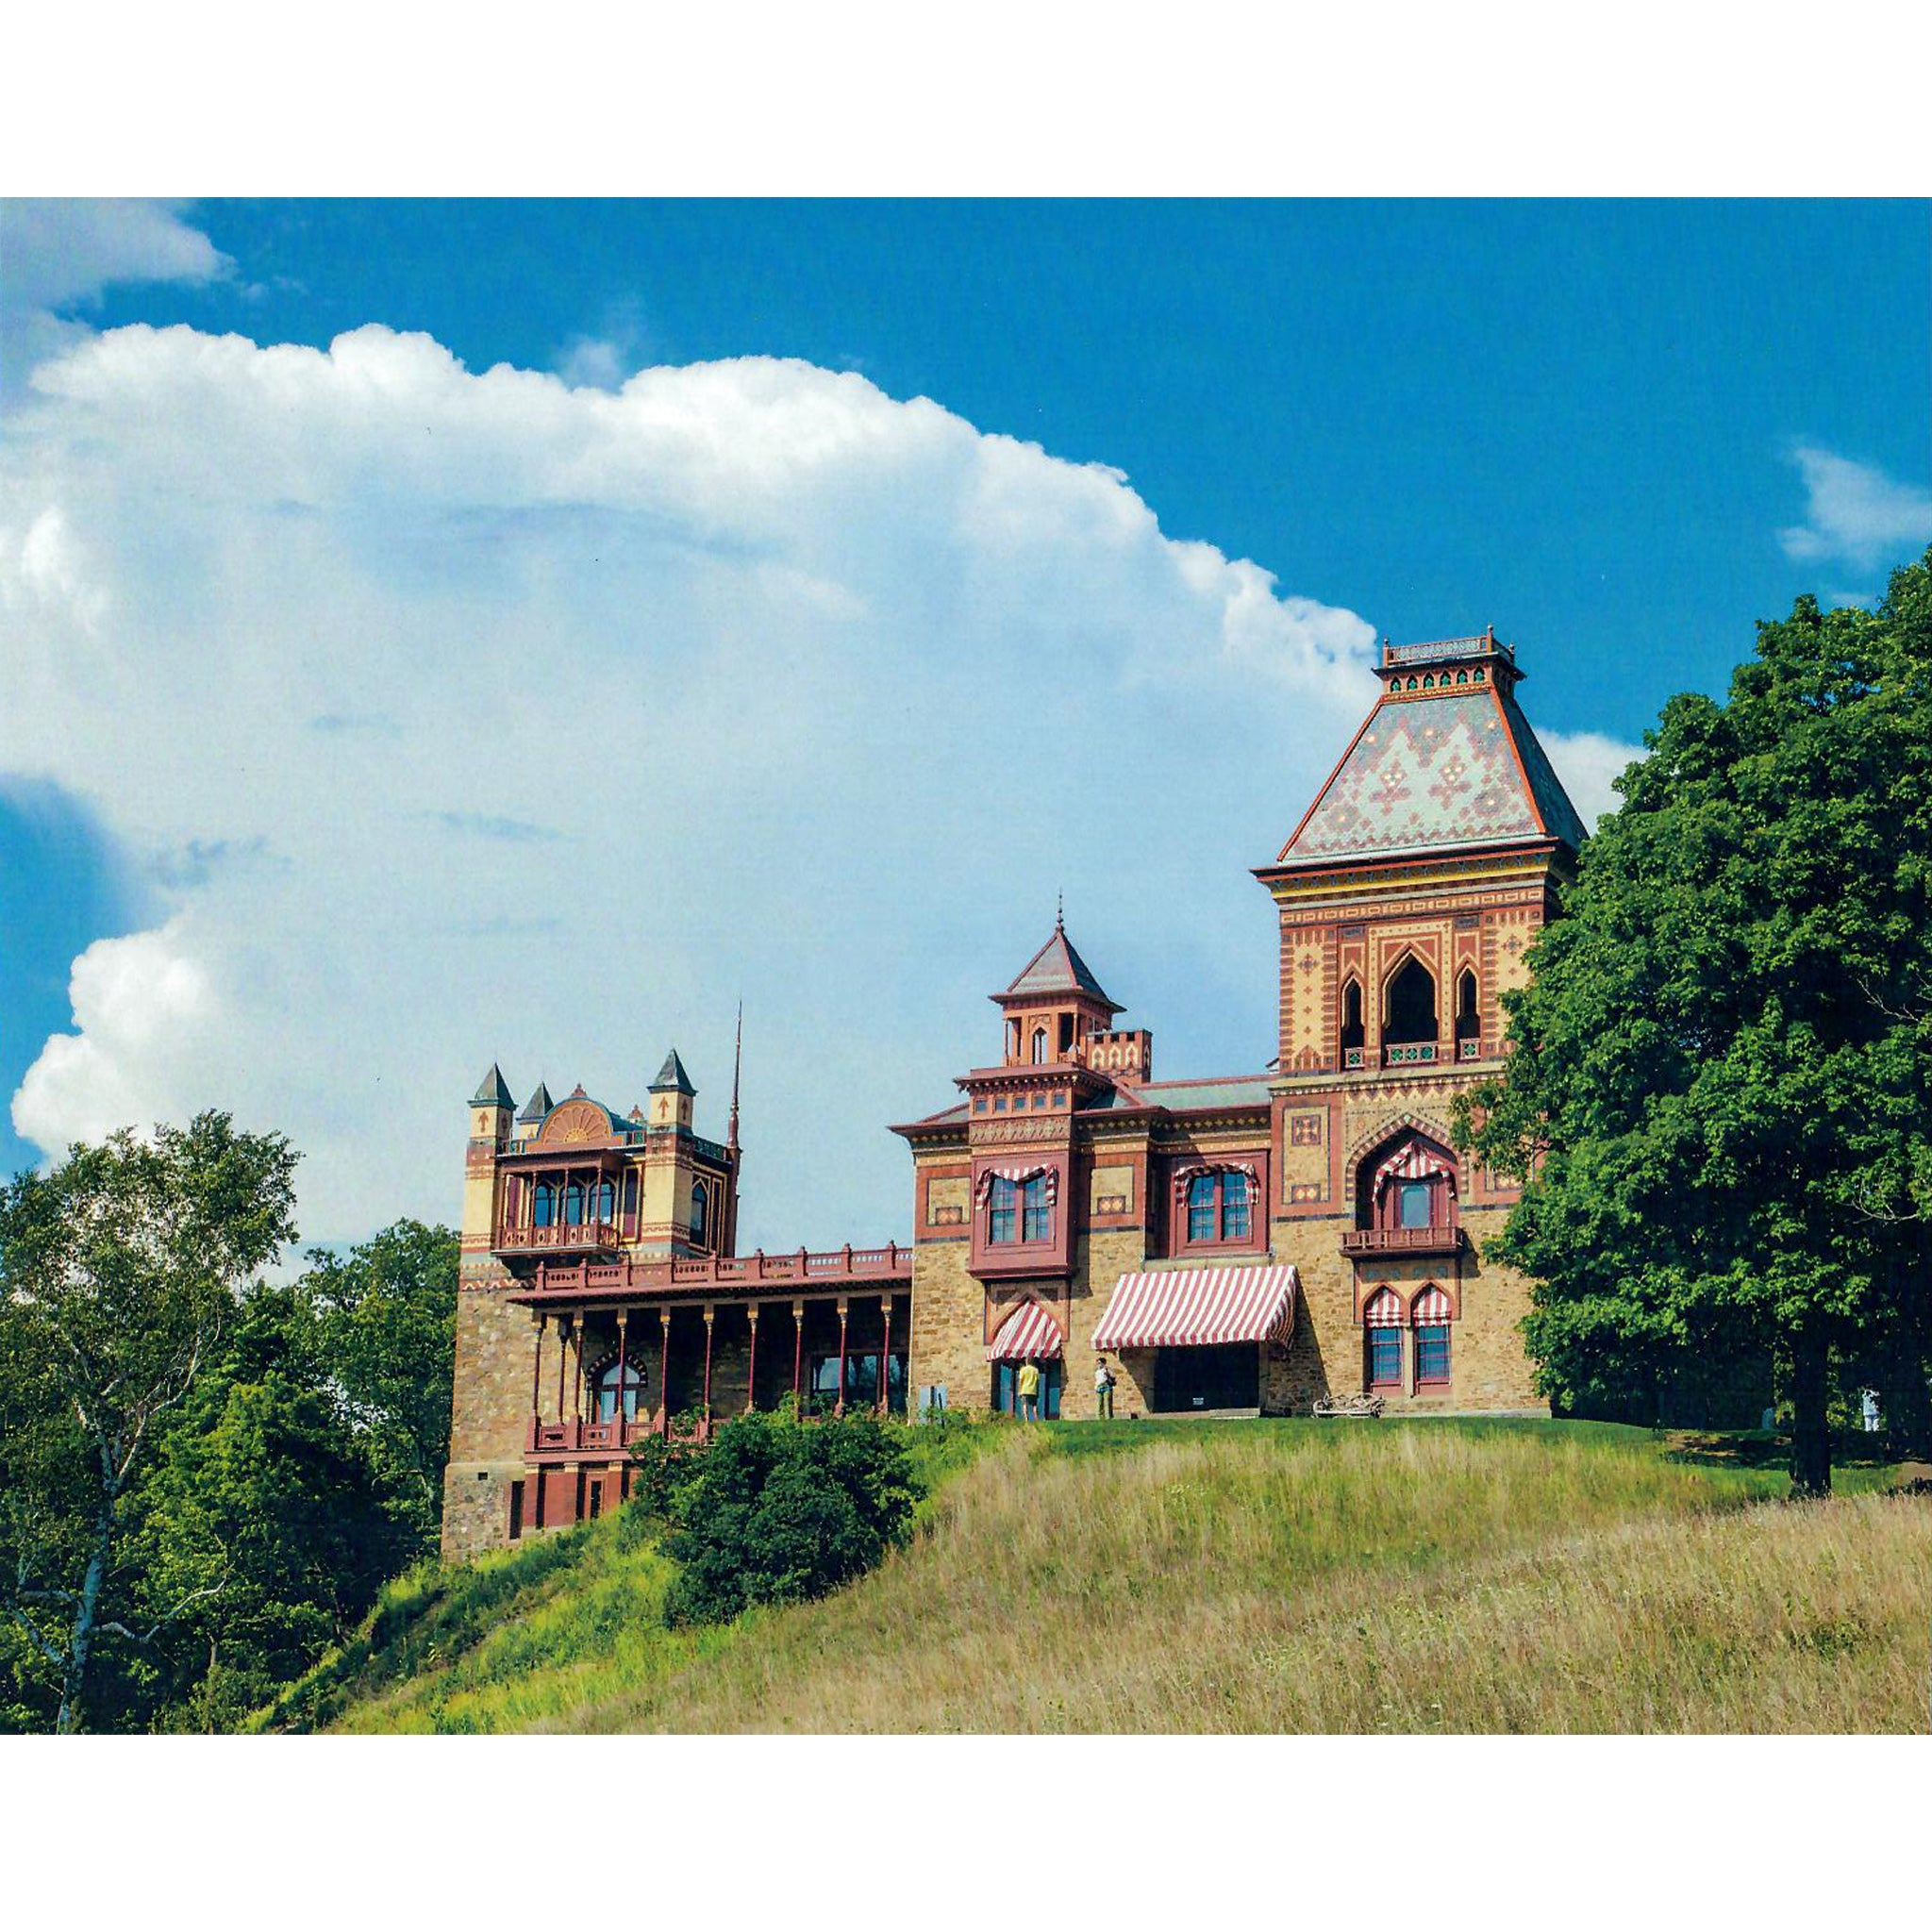 "Clouds Over Main House, Olana 8""x10"" Print"